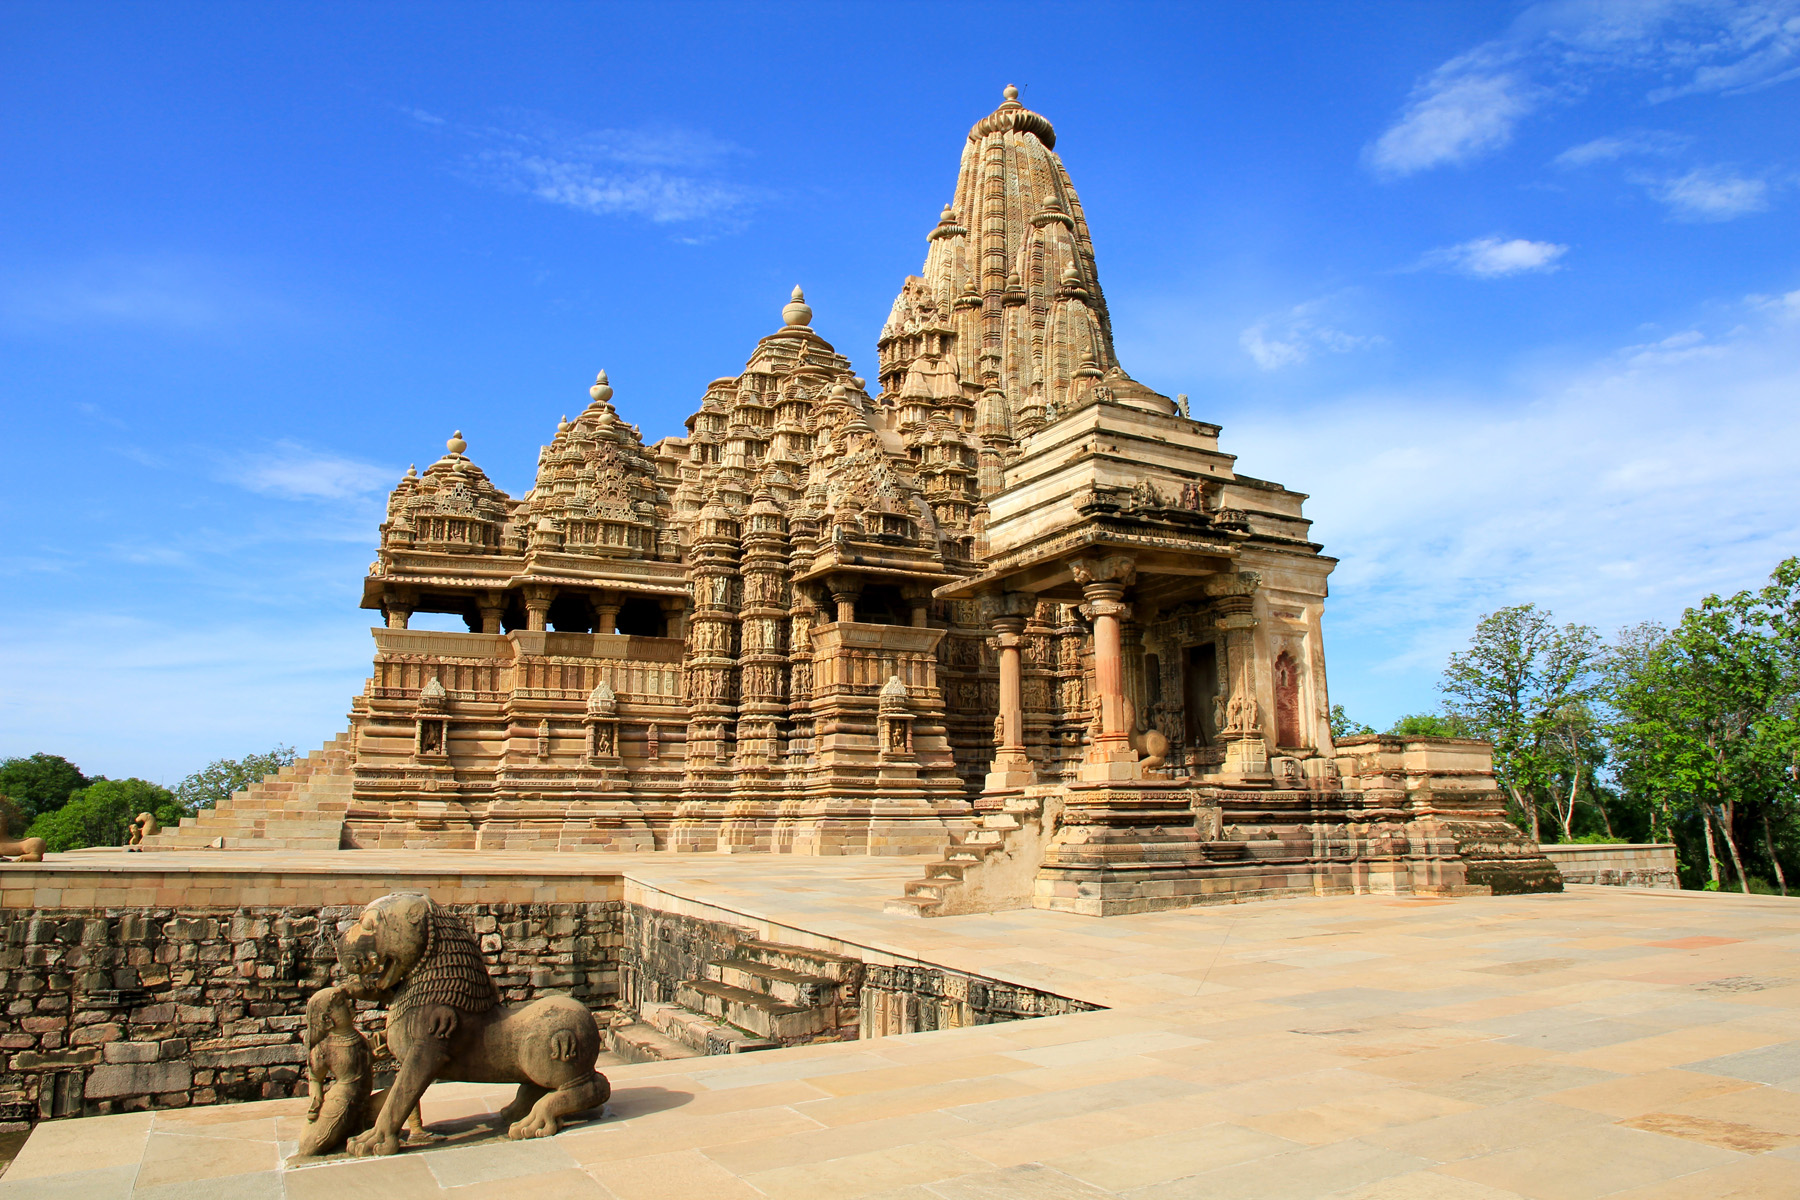 Lakshmana temple khajuraho for Archaeological monuments in india mural paintings